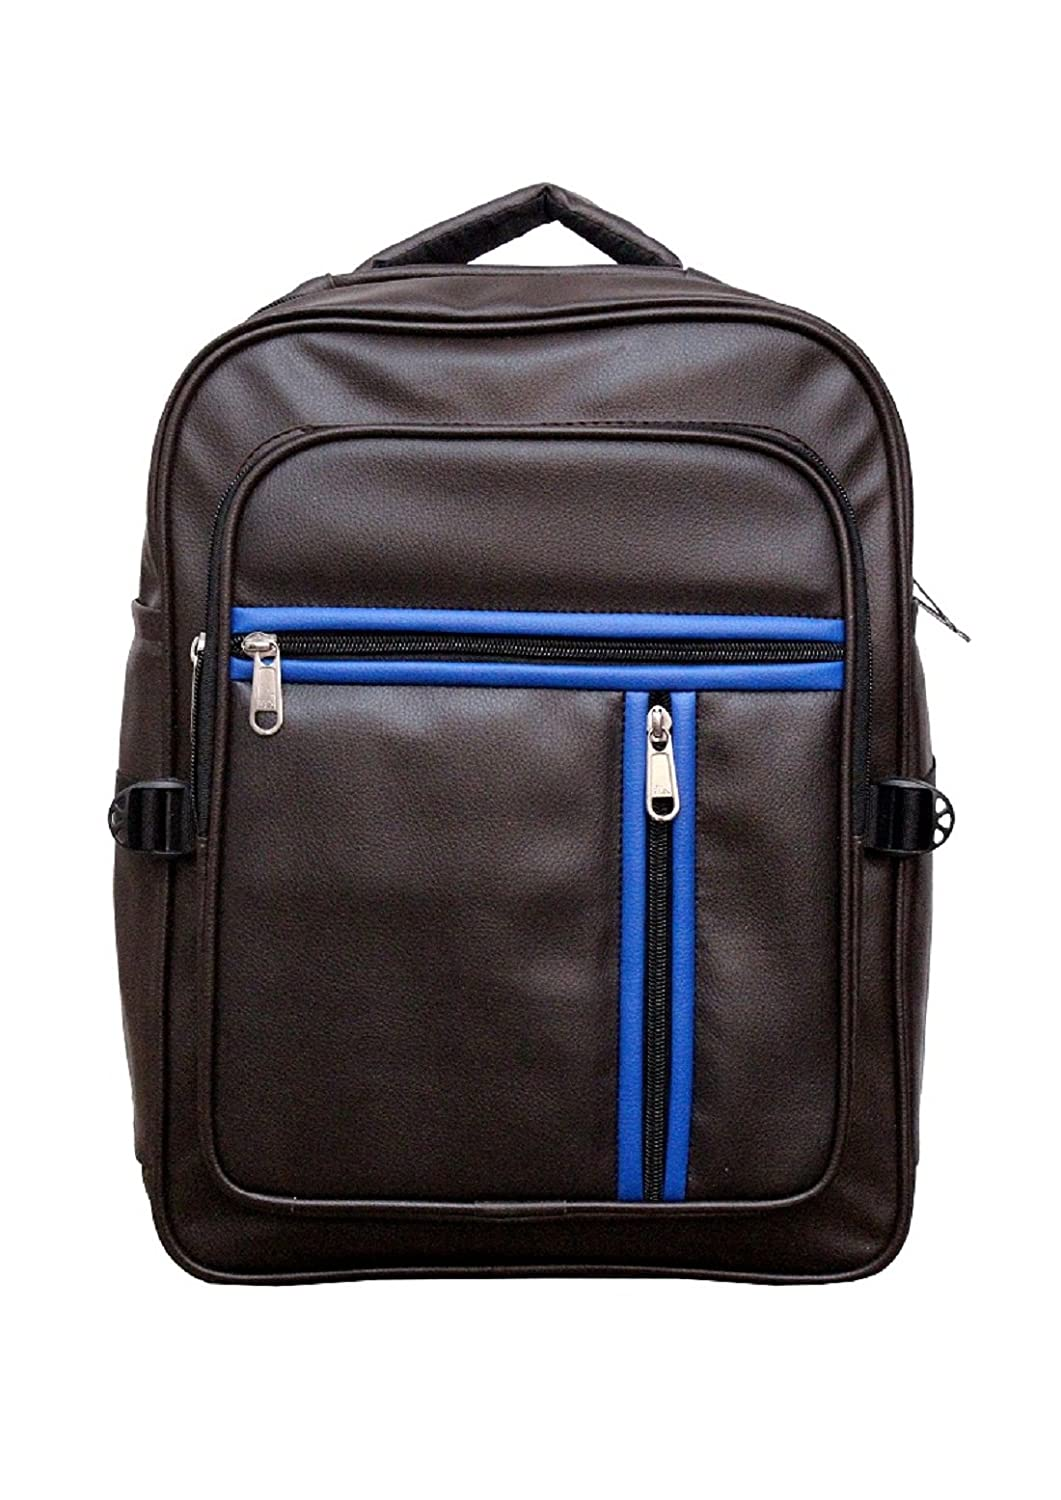 16 Inch Laptop Bag daily use. Black